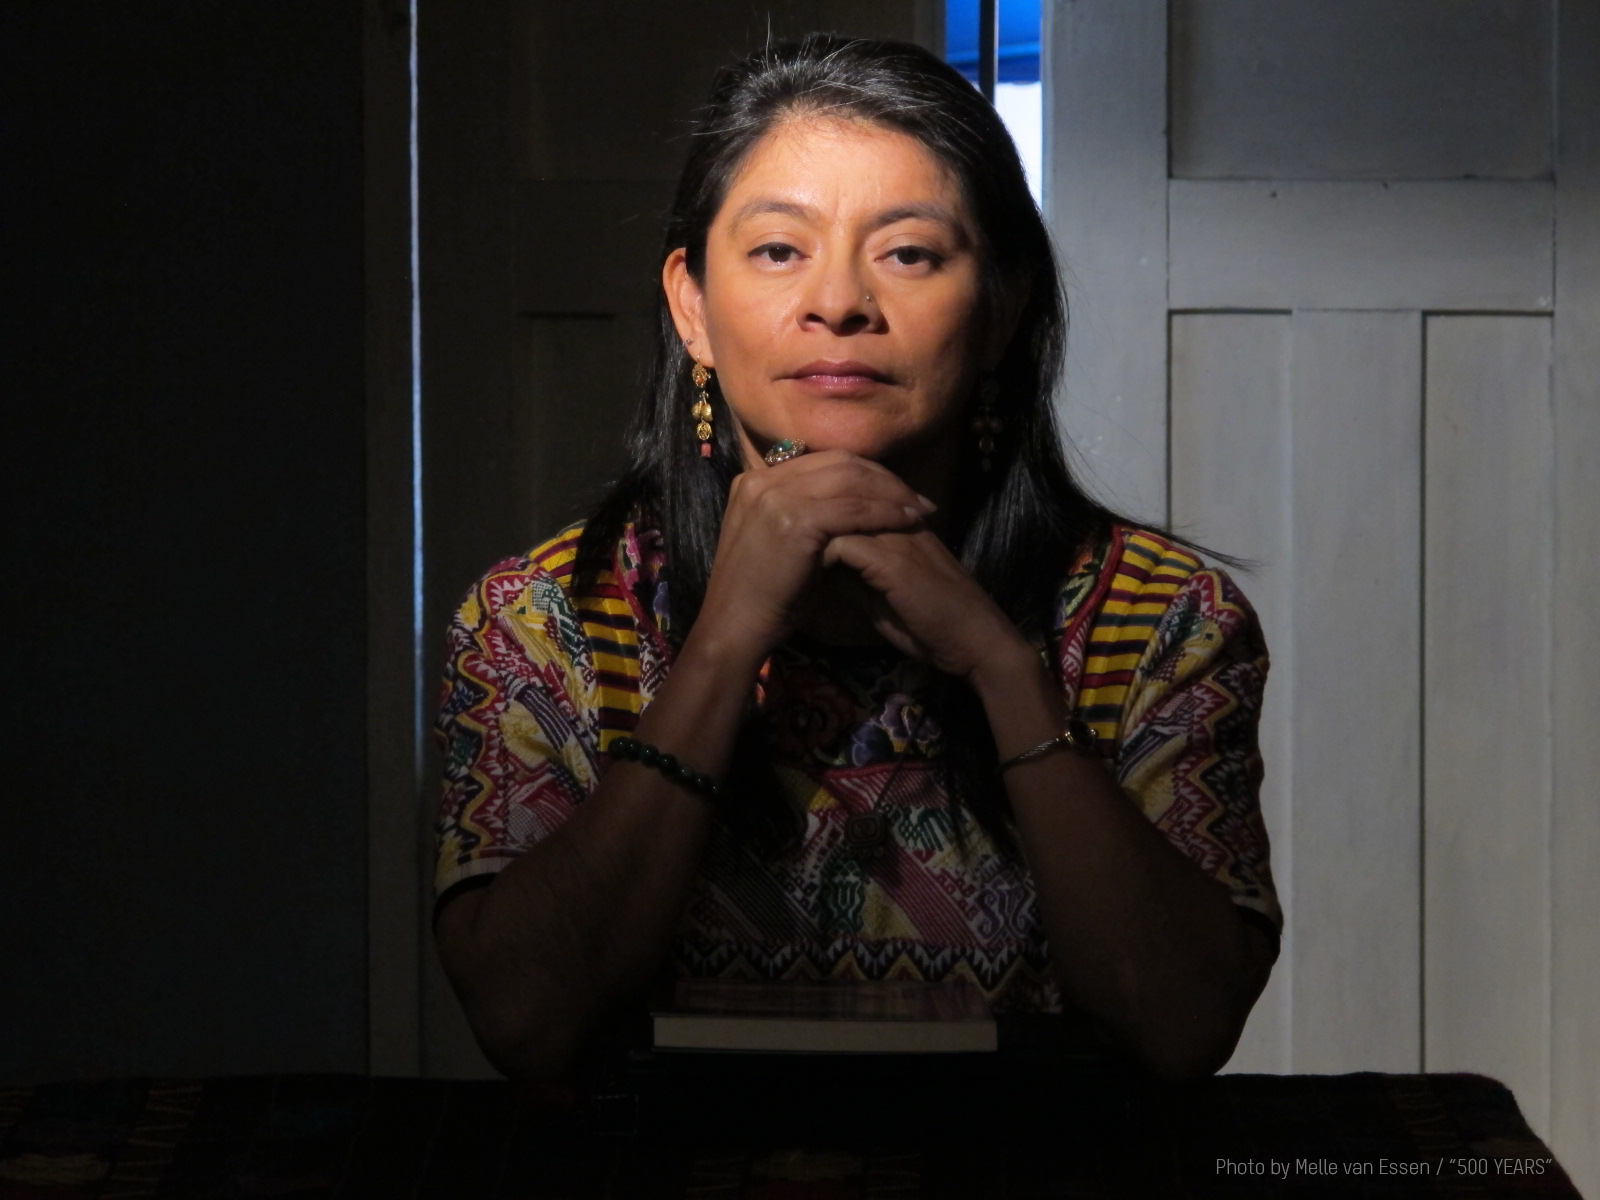 Irma Alicia Velásquez Nimatuj - is a journalist, social anthropologist, and international spokeswoman. She has been at the forefront of struggles for respect for indigenous cultures.She was Executive Director of the Mecanismo de Apoyo a Pueblos Indígenas Oxlajuj Tzikin (Support Mechanism for Indigenous Peoples) (2005-2013). Dr. Velásquez Nimatuj is the first Maya-K'iche' woman to earn a doctorate in Social Anthropology, and she initiated the court case that made racial discrimination illegal in Guatemala. She has won numerous academic fellowships and awards for her journalism. She was a member of the Latin American Consulting Group of Indigenous Leaders for UNICEF and participates in the UN through the Permanent Forum on Indigenous Issues. She also served as advisor on indigenous issues for the Latin American and Caribbean office of UN Women (2014-2015).Dr. Velásquez Nimatuj is the author of Pueblos Indígenas, Estado y Lucha por Tierra en Guatemala (AVANCSO 2008) and La pequeña burguesía indígena comercial de GuatemalaDesigualdades de clase, raza y género (AVANCSO-SERJUS 2002). She writes a weekly newspaper column in el Periódico de Guatemala and through both her political and academic efforts seeks to create viable and realistic ways to achieve equality for indigenous people and a truly democratic and participatory democracy in Guatemala.